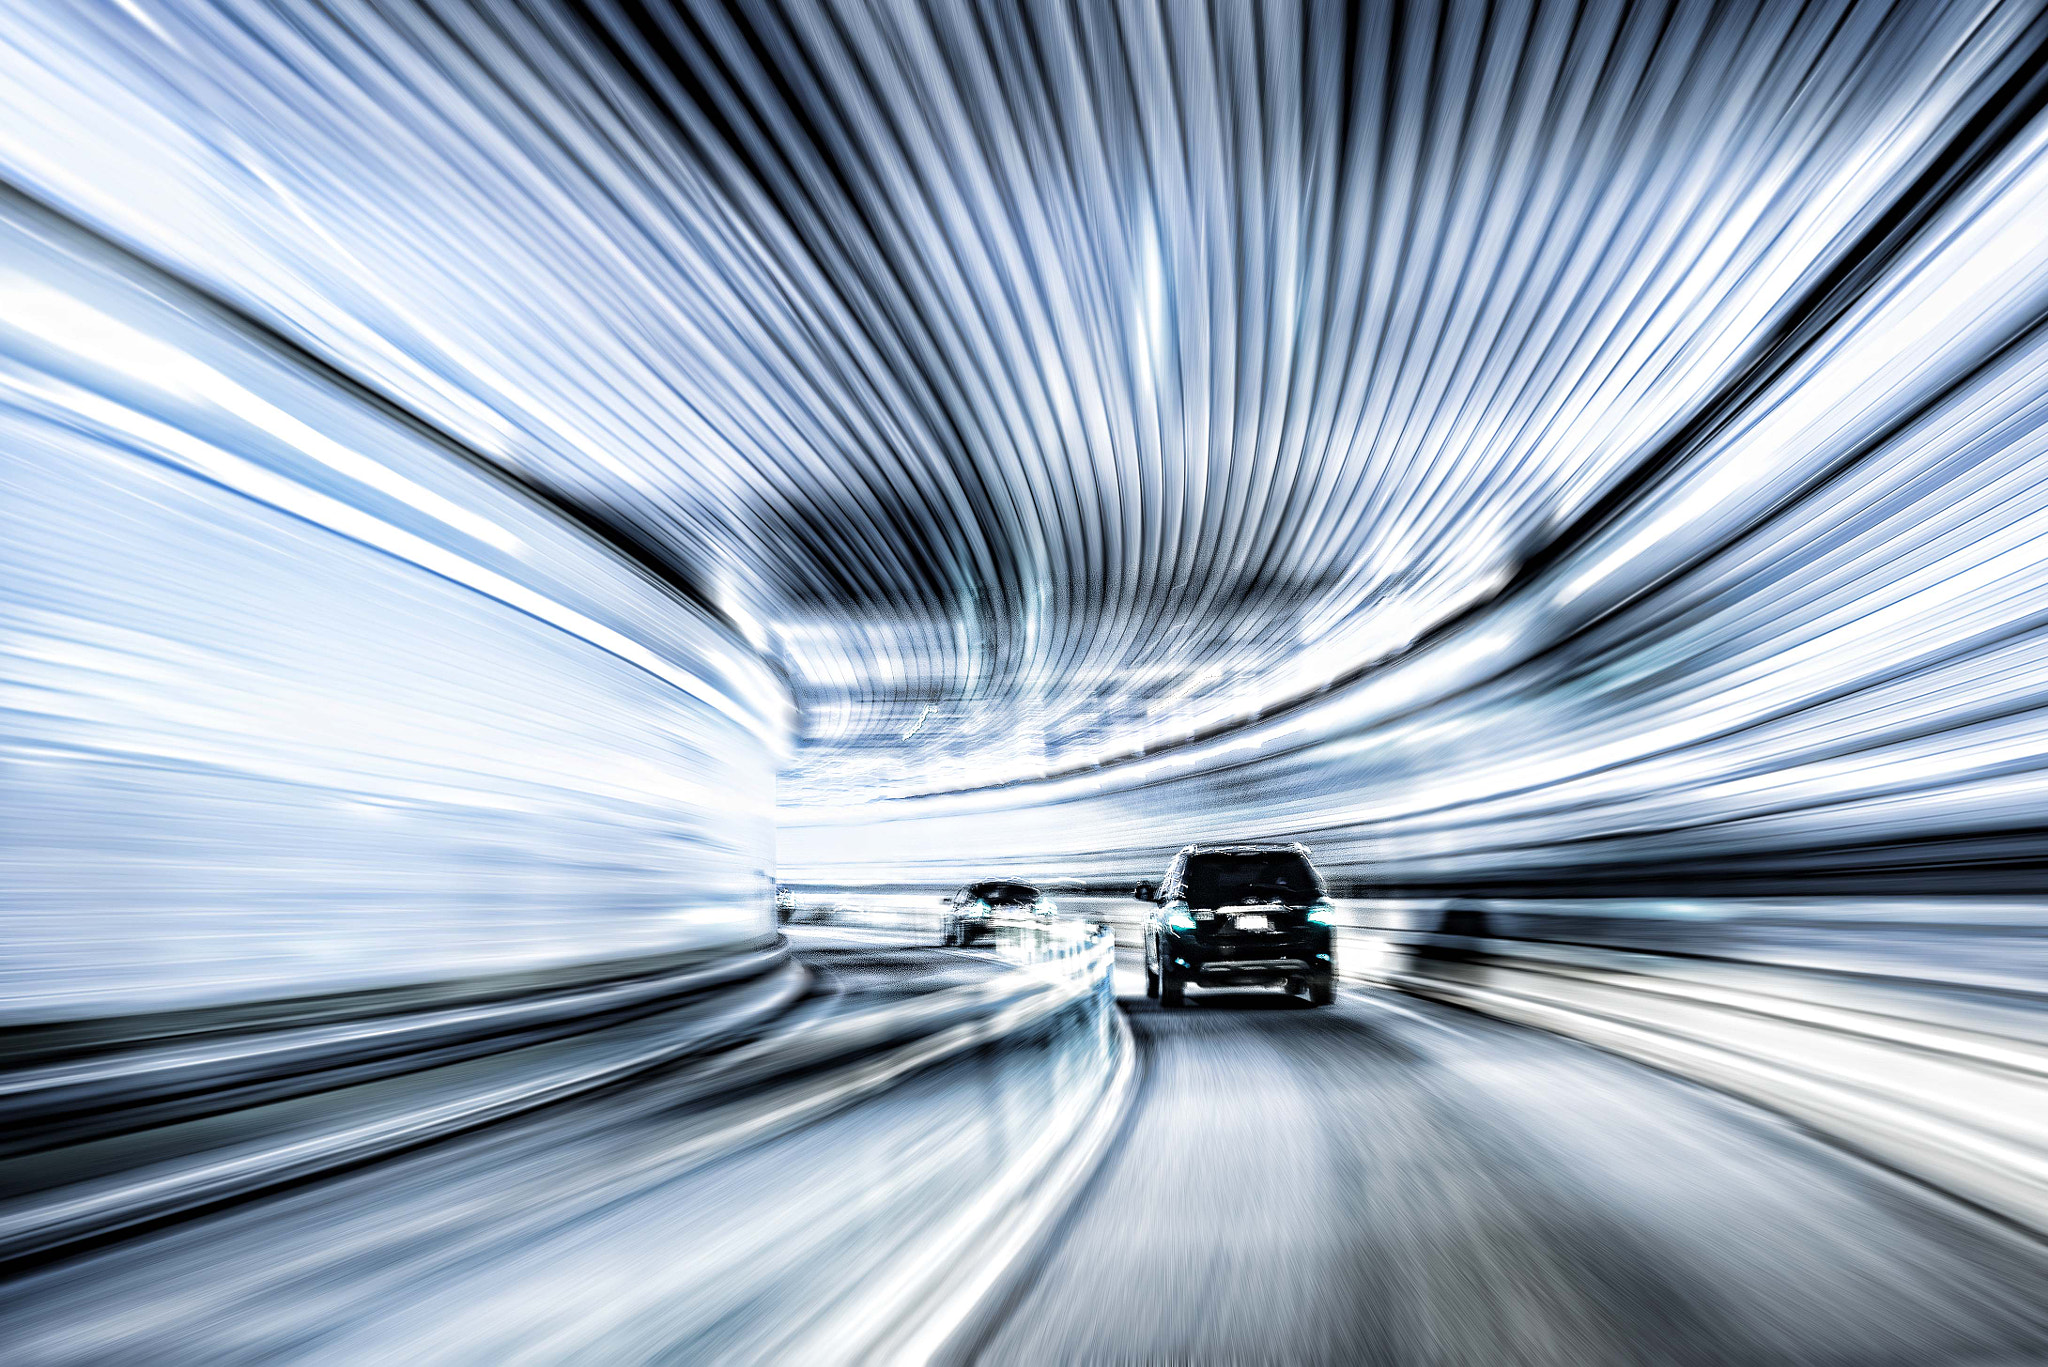 Photograph TunnelDrive2 by Bill Sherman on 500px